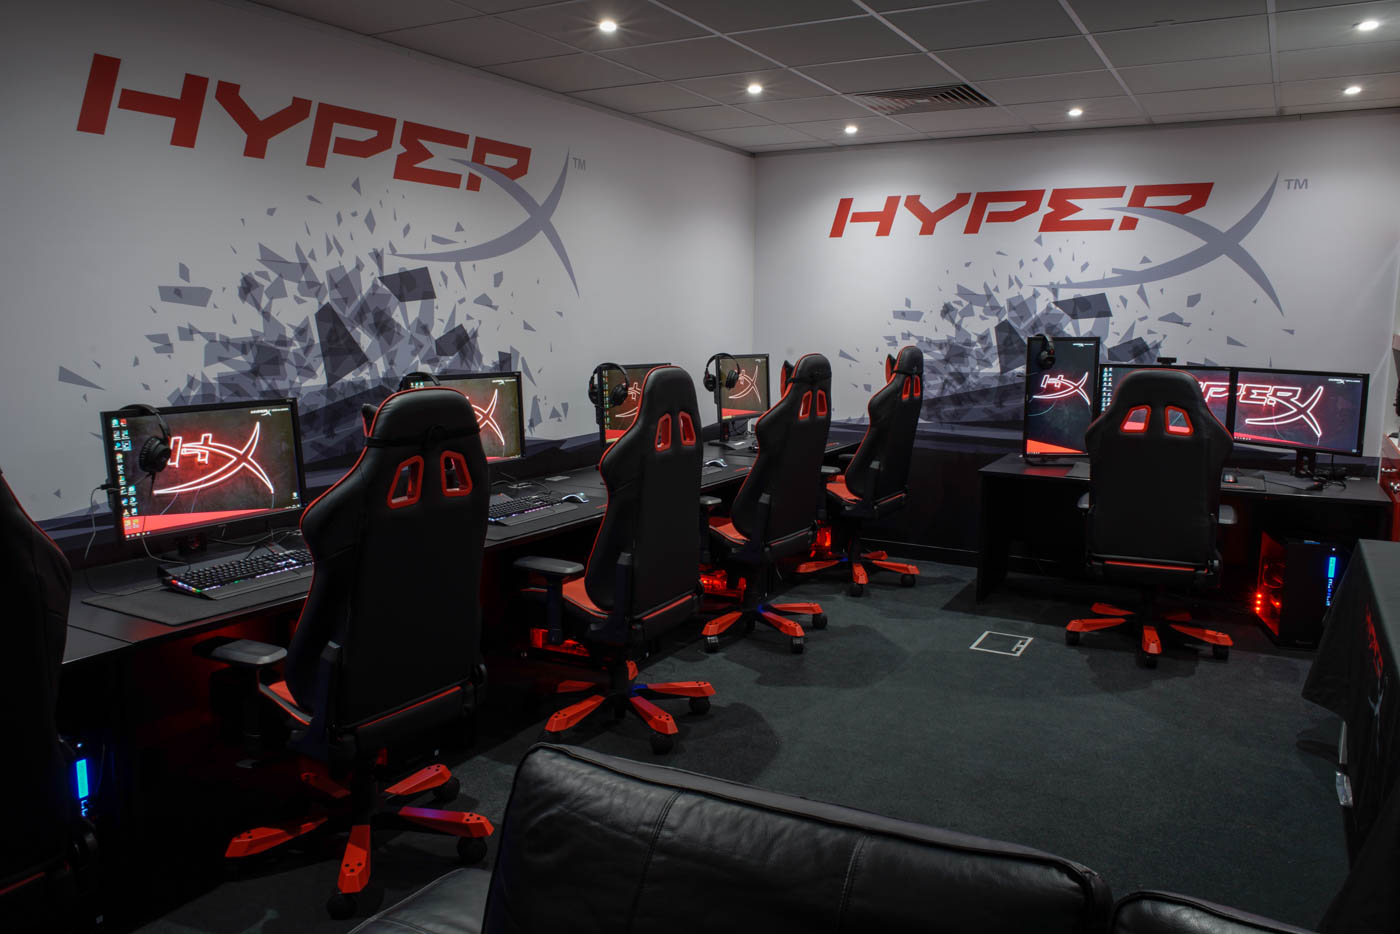 HyperX_Gaming_Room-1456